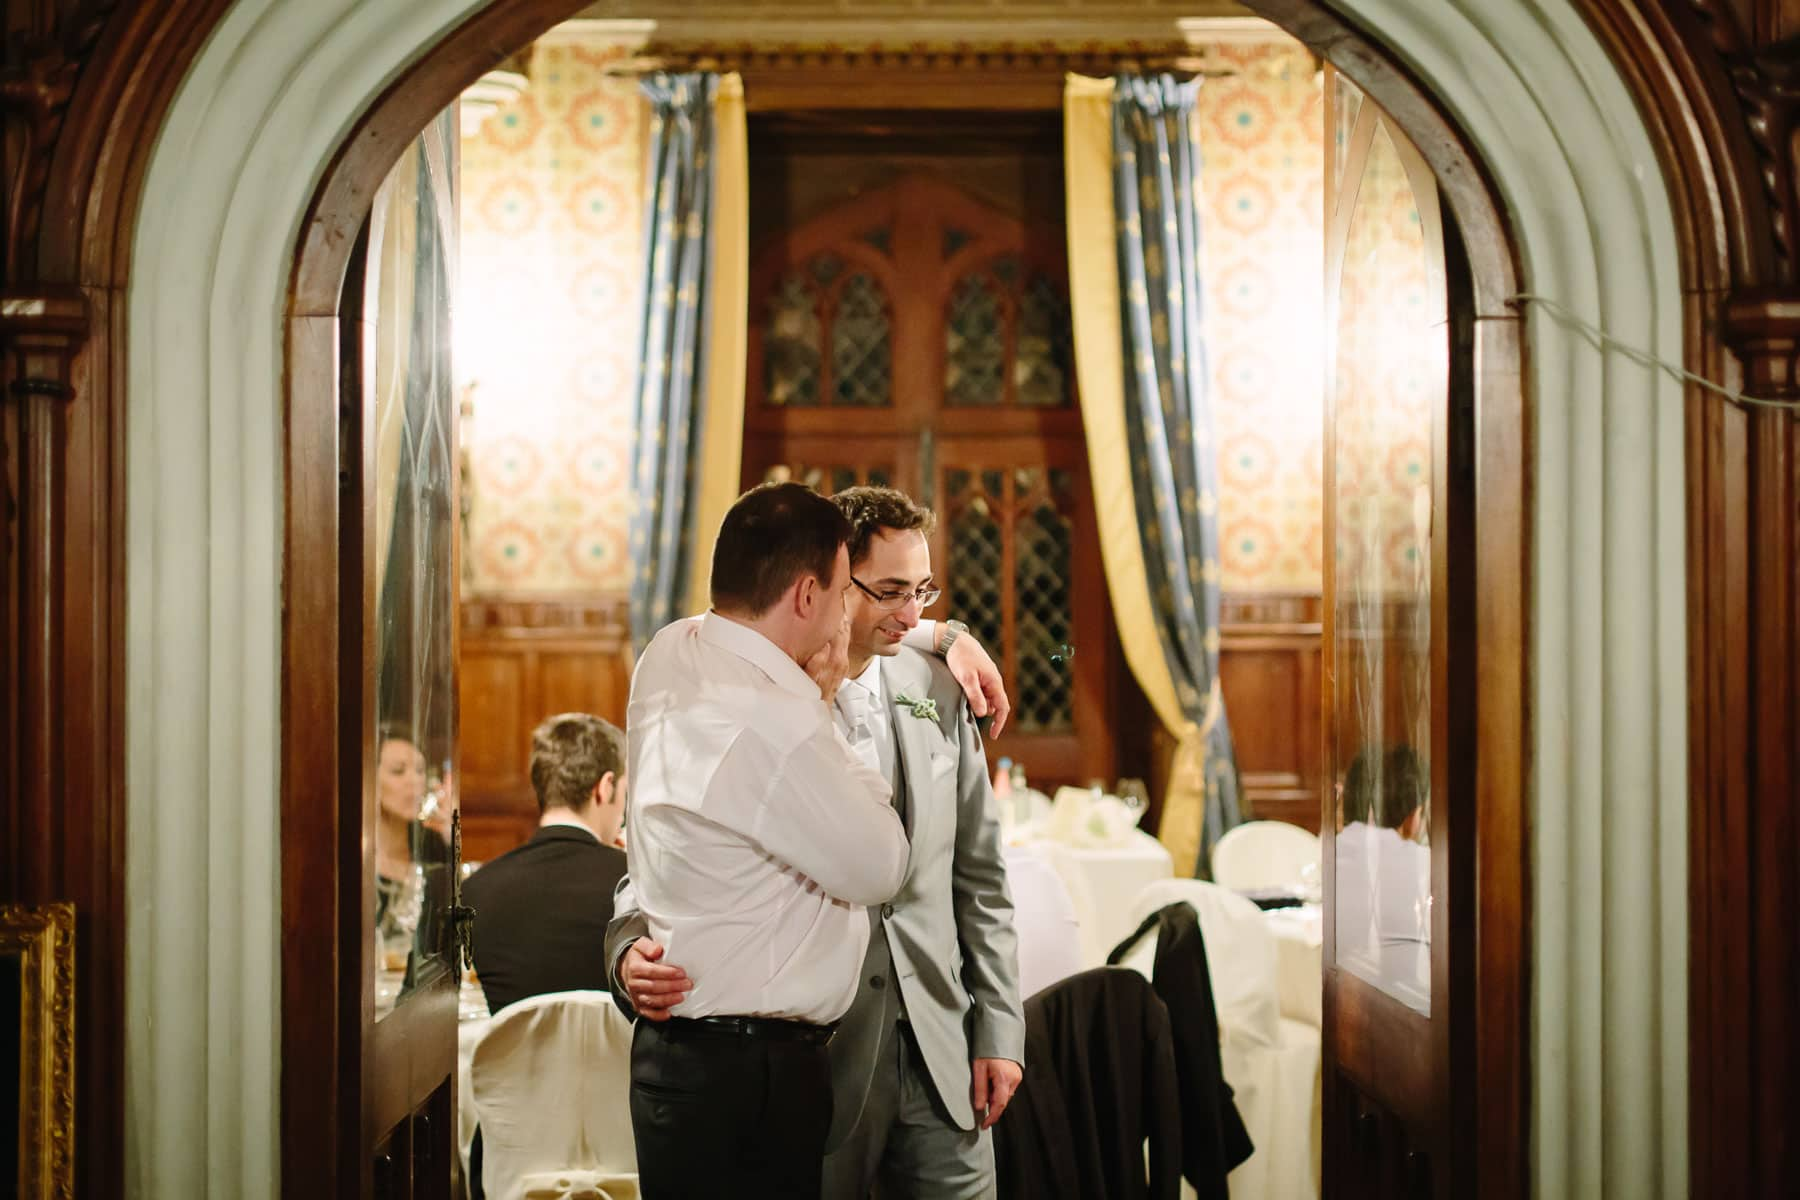 Groom and friend standing in large doorway in this destination wedding in Castello Dal Pozzo, Italy.